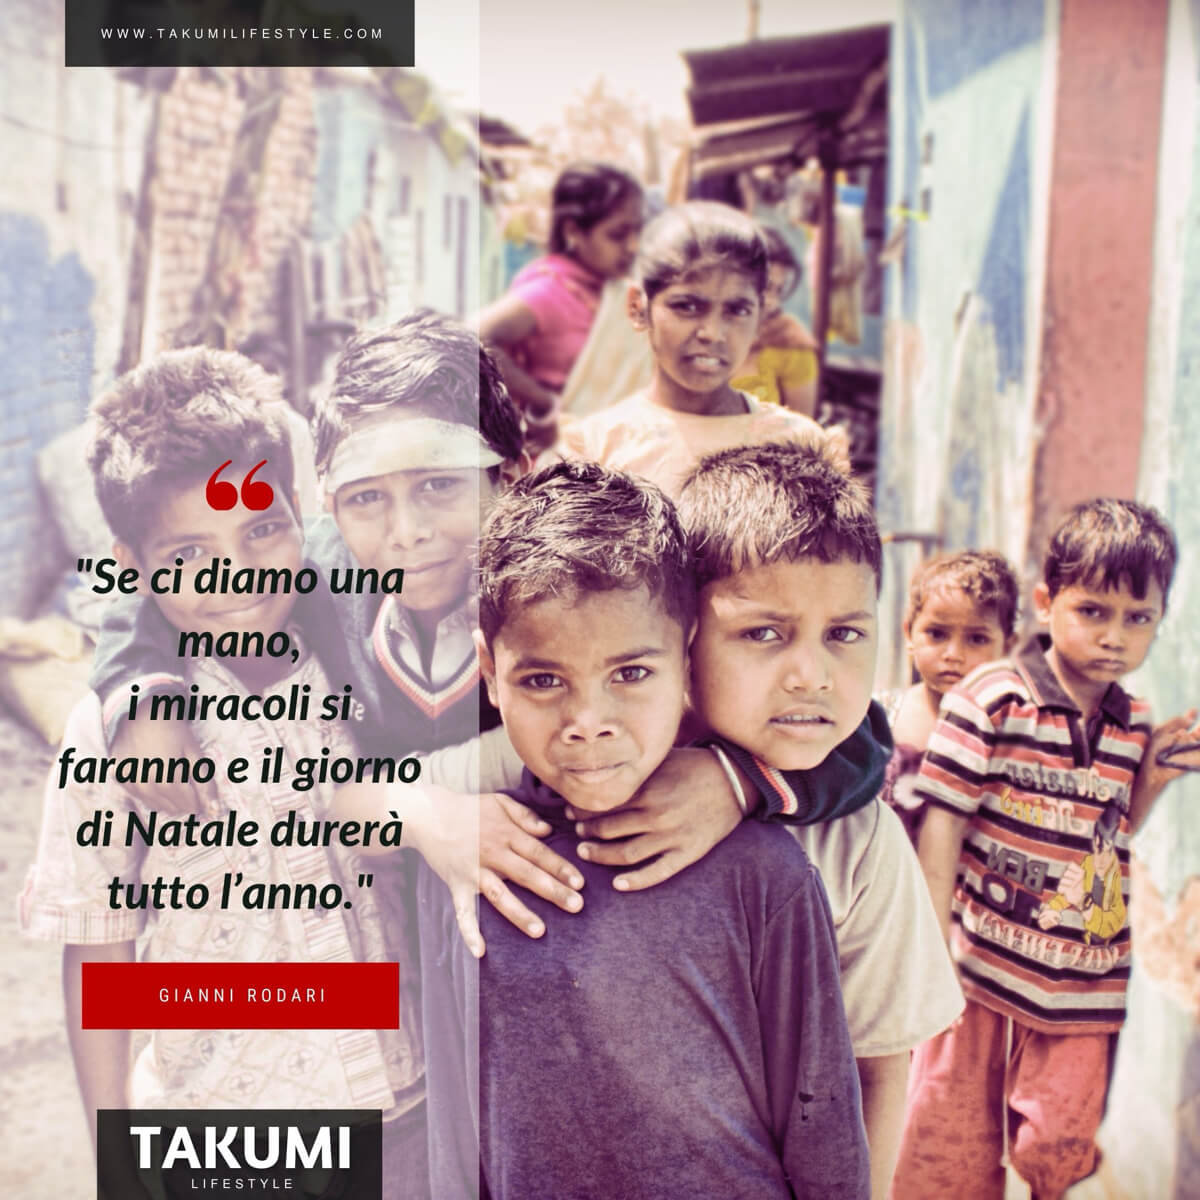 TAKUMI lifestyle - quote#18 Gianni Rodari